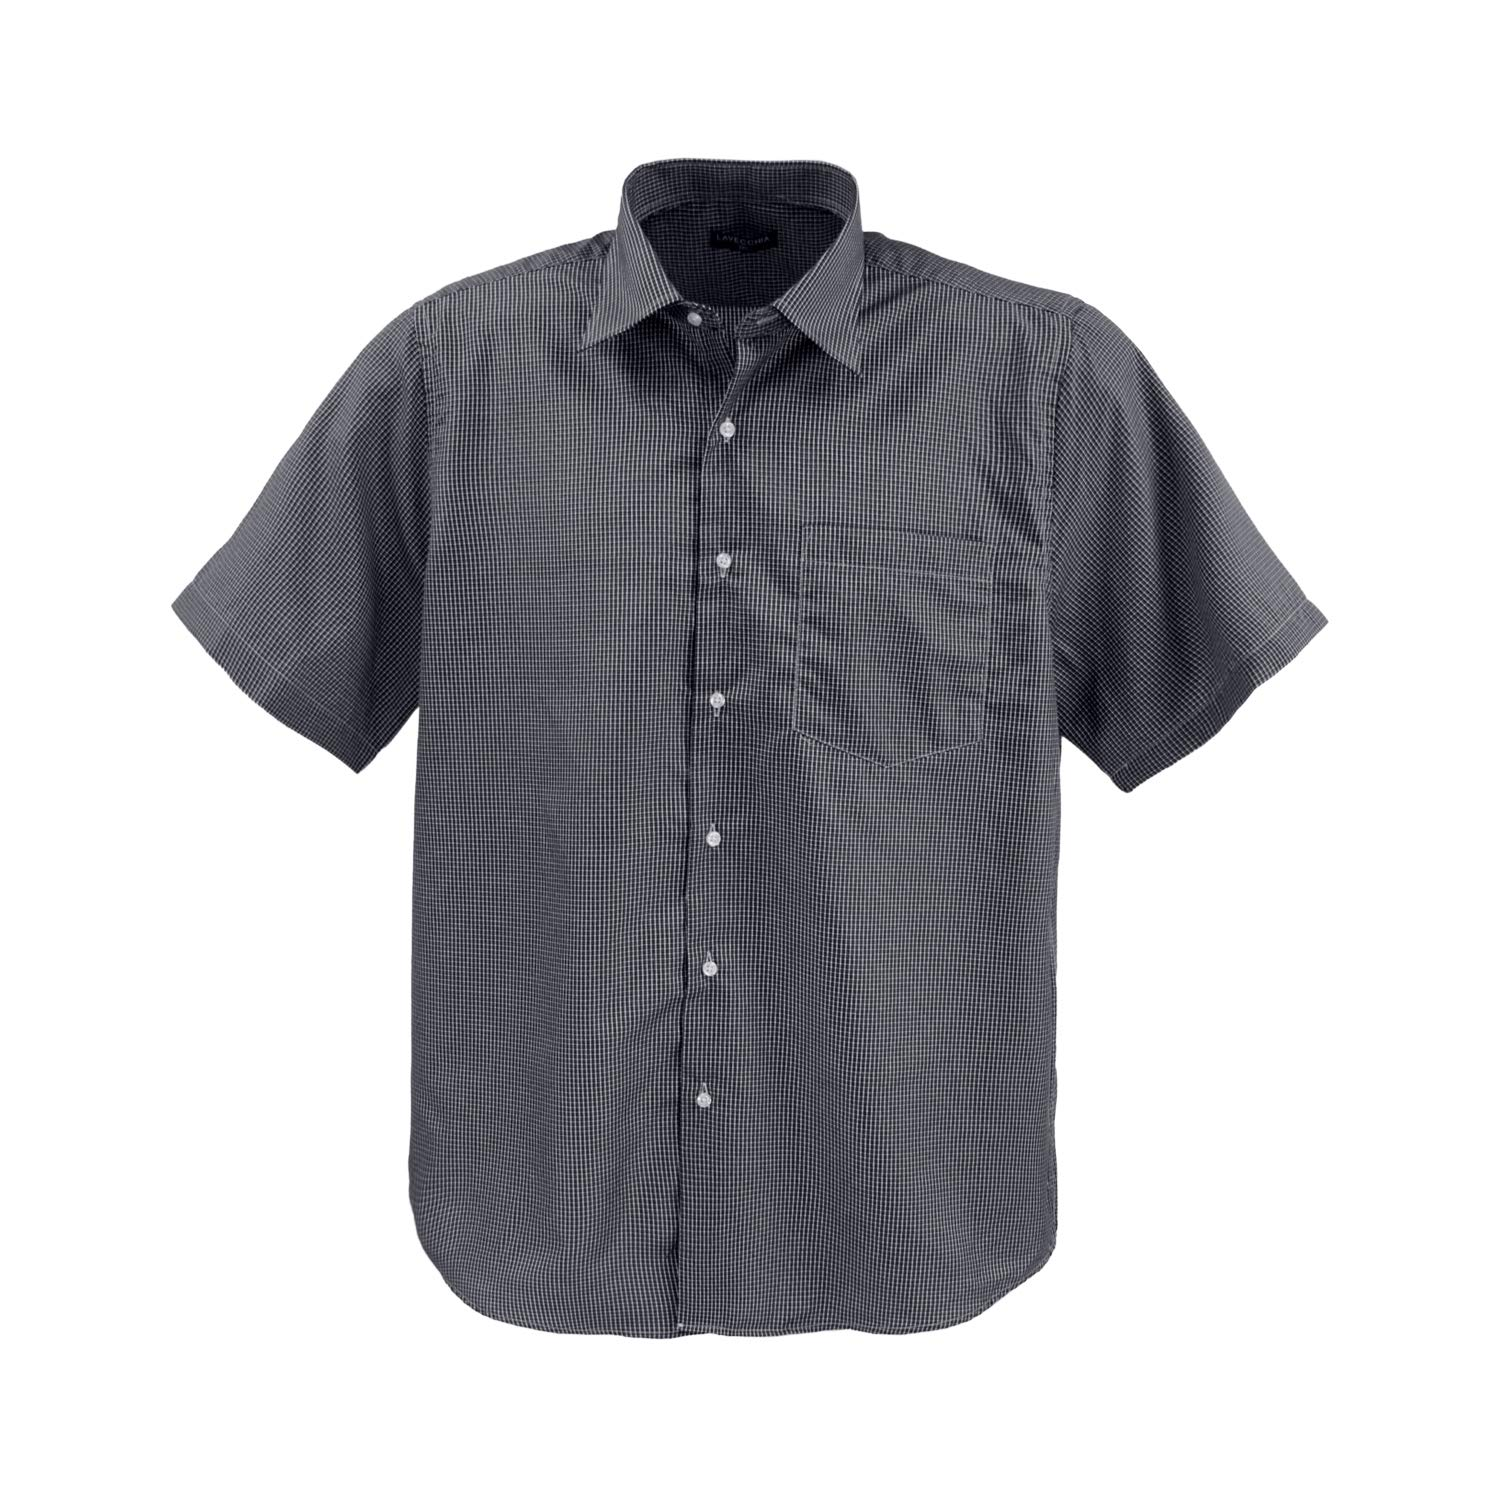 TALLA 7XL. Lavecchia Men's Short Sleeve Shirt Black-Gray-White Big Sizes